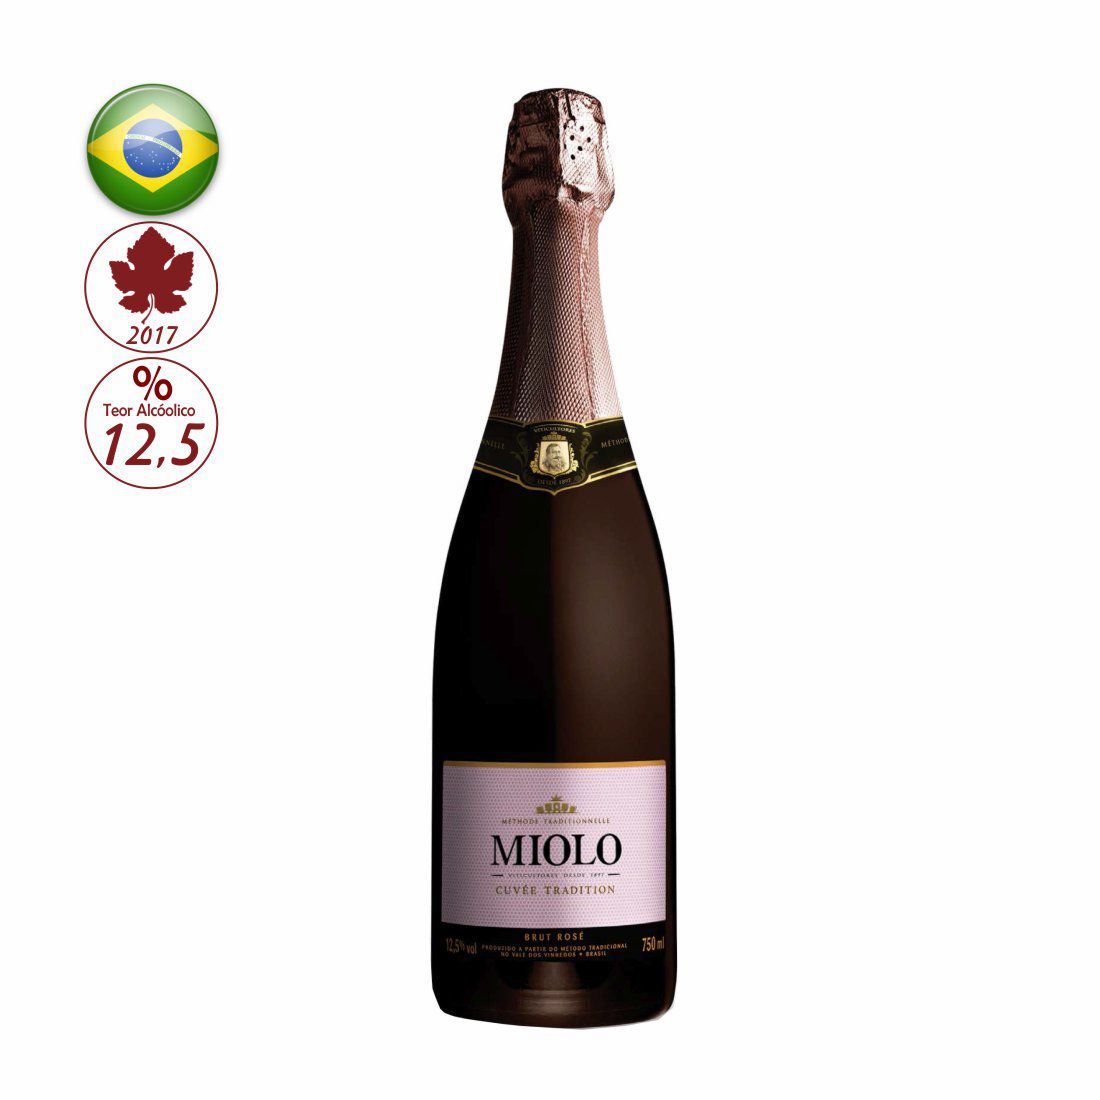 ESPUMANTE MIOLO CUVEE TRADITION 750ML BRUT ROSE